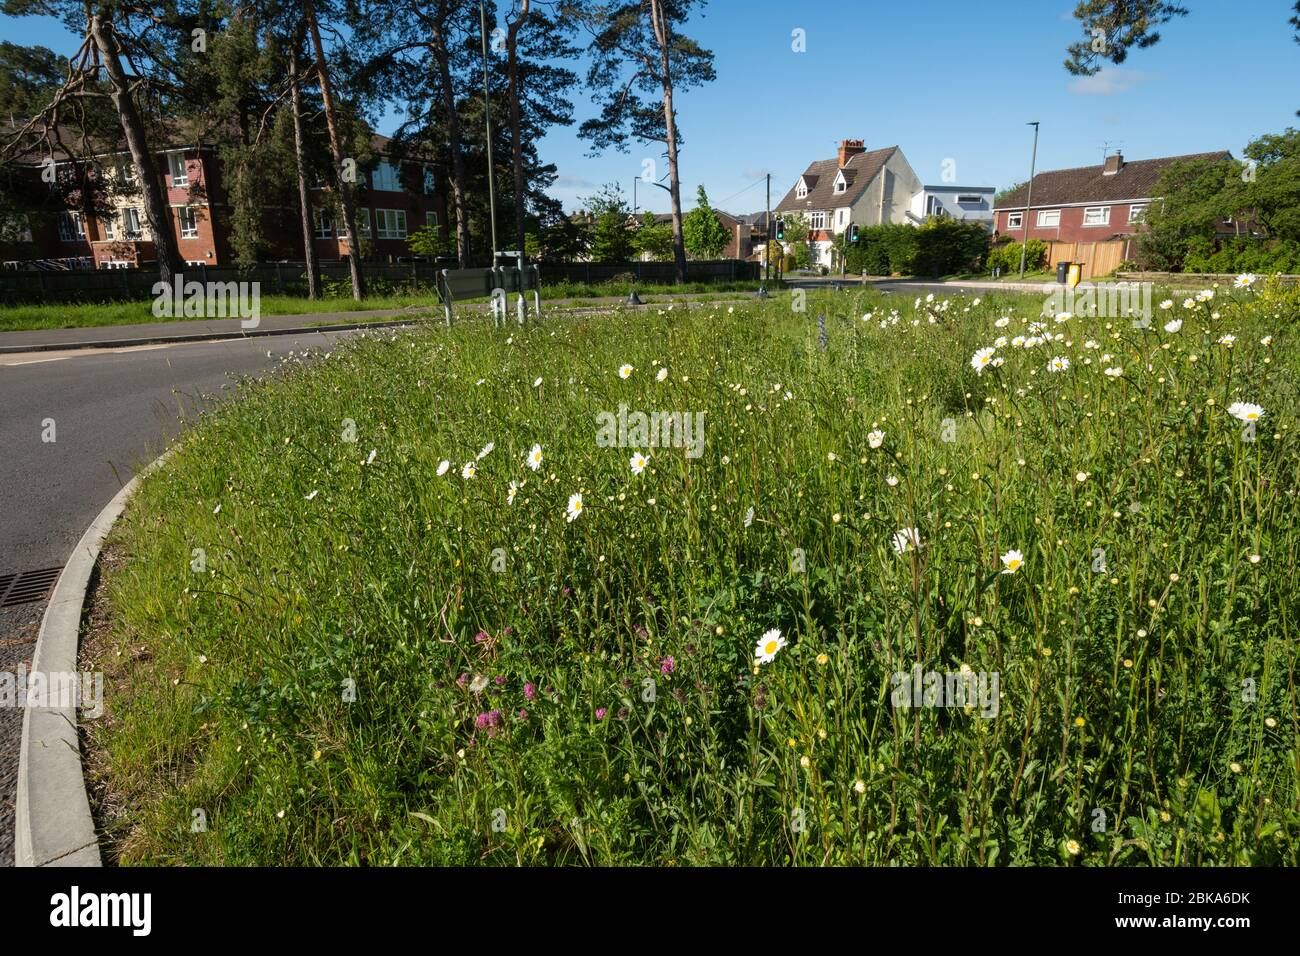 Wildflowers including oxeye daisies growing on a roundabout in Surrey, England, UK Stock Photo